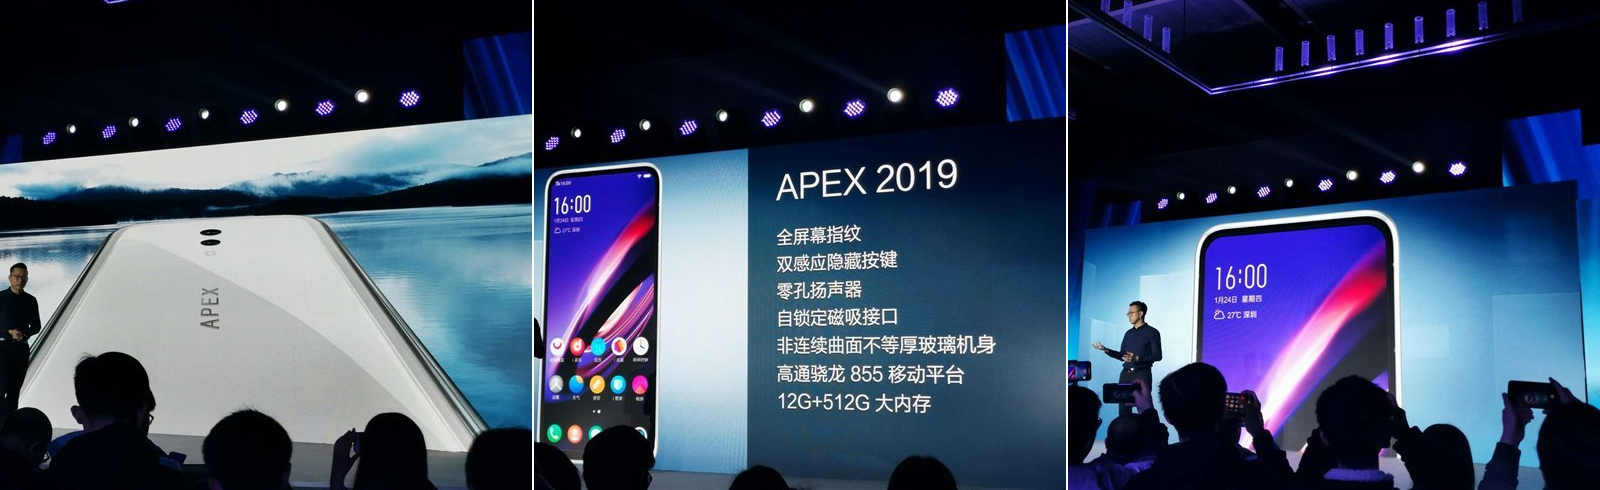 Vivo Apex 2019 is official with 5G support, SD 855, 12GB of RAM, 512GB of storage, no-hole design